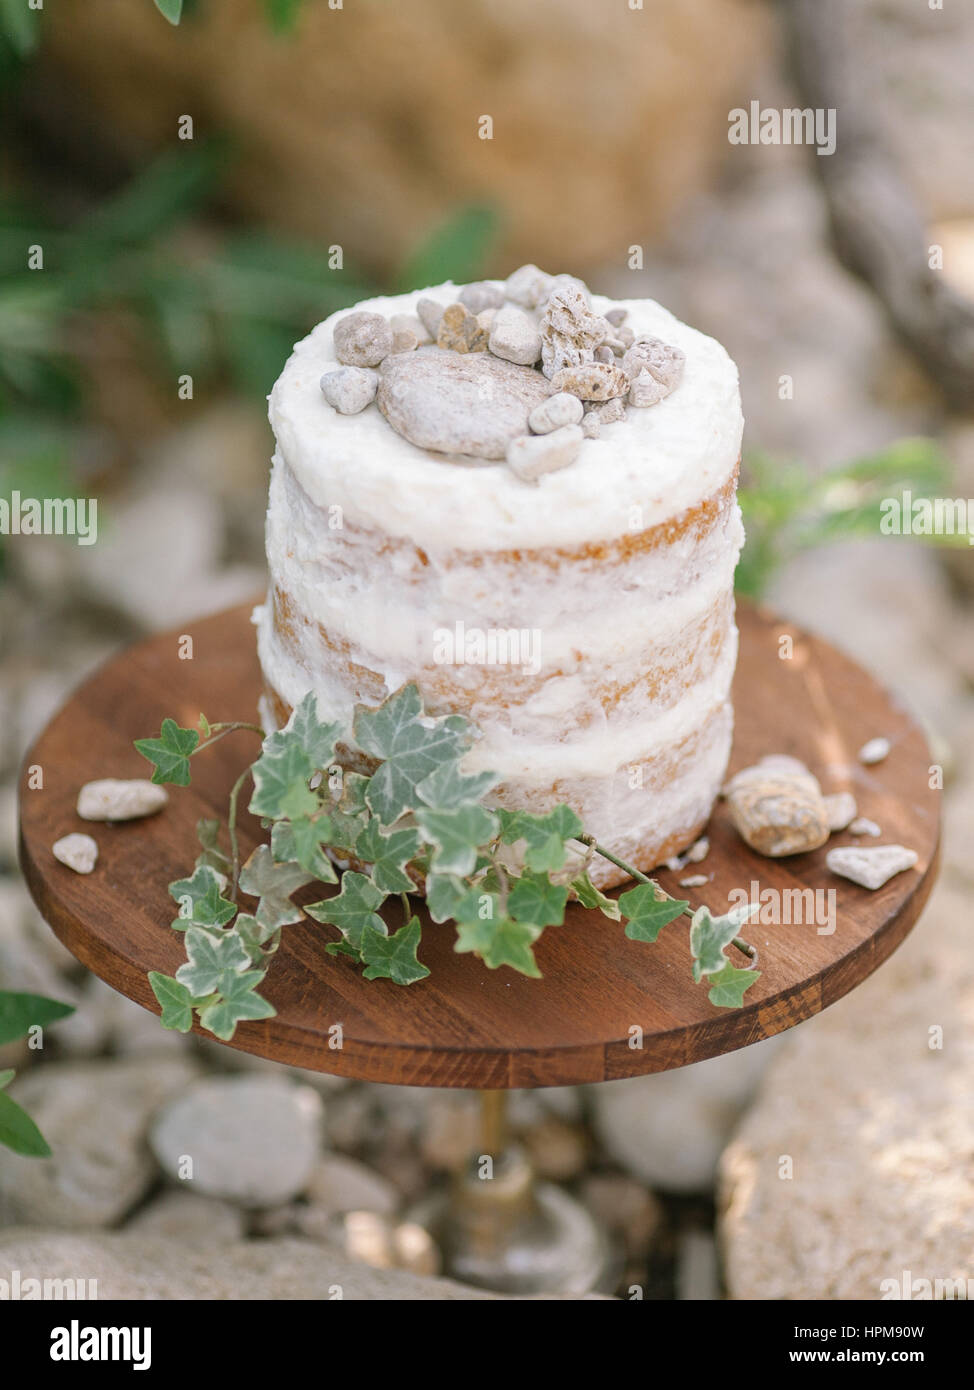 naced cake whith white cream on a wooden substrate decorated with decorative stones and greens against the nature - Stock Image